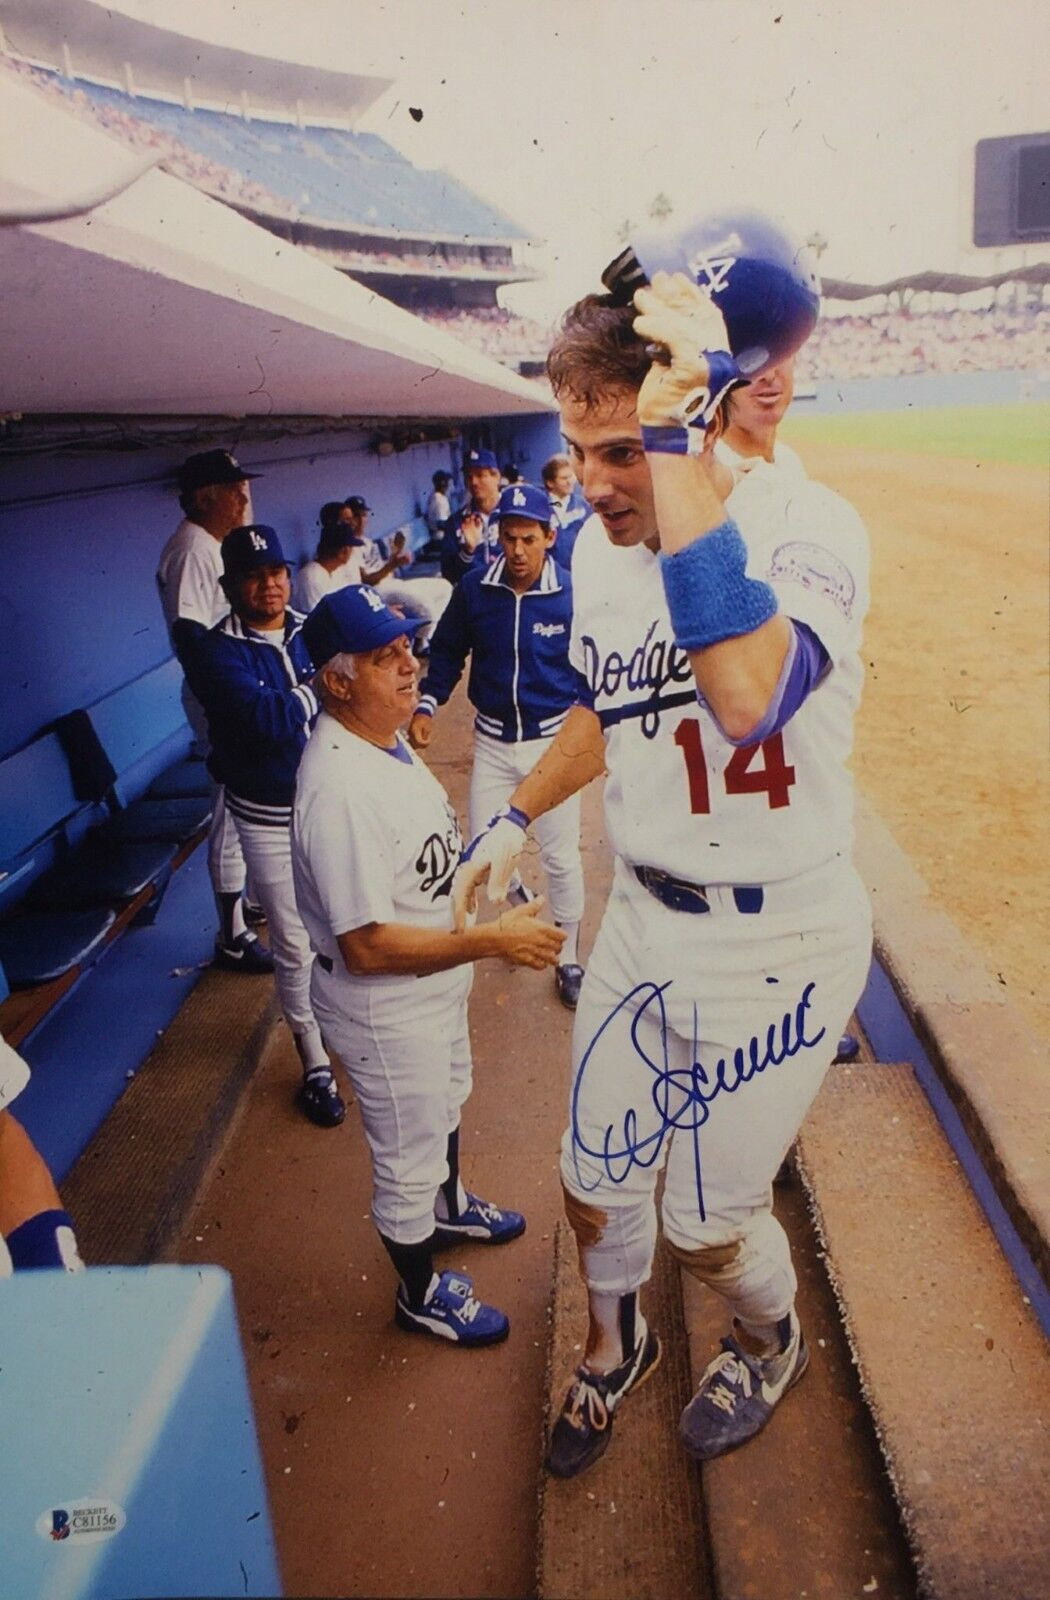 Mike Scioscia Signed Dodgers Baseball 12x18 Photo Beckett BAS C81156